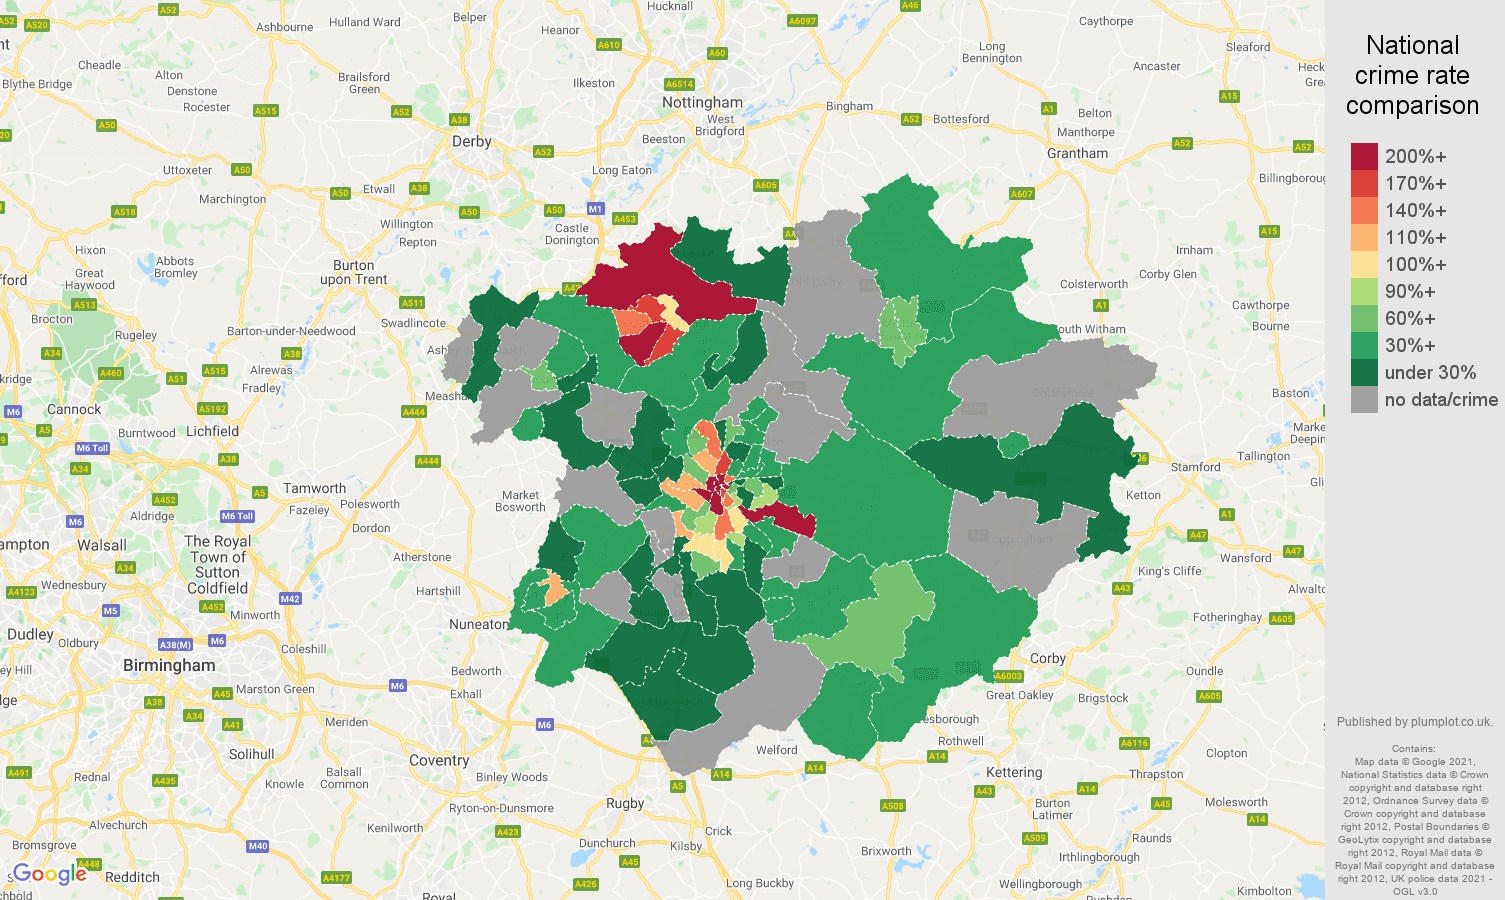 Leicester bicycle theft crime rate comparison map